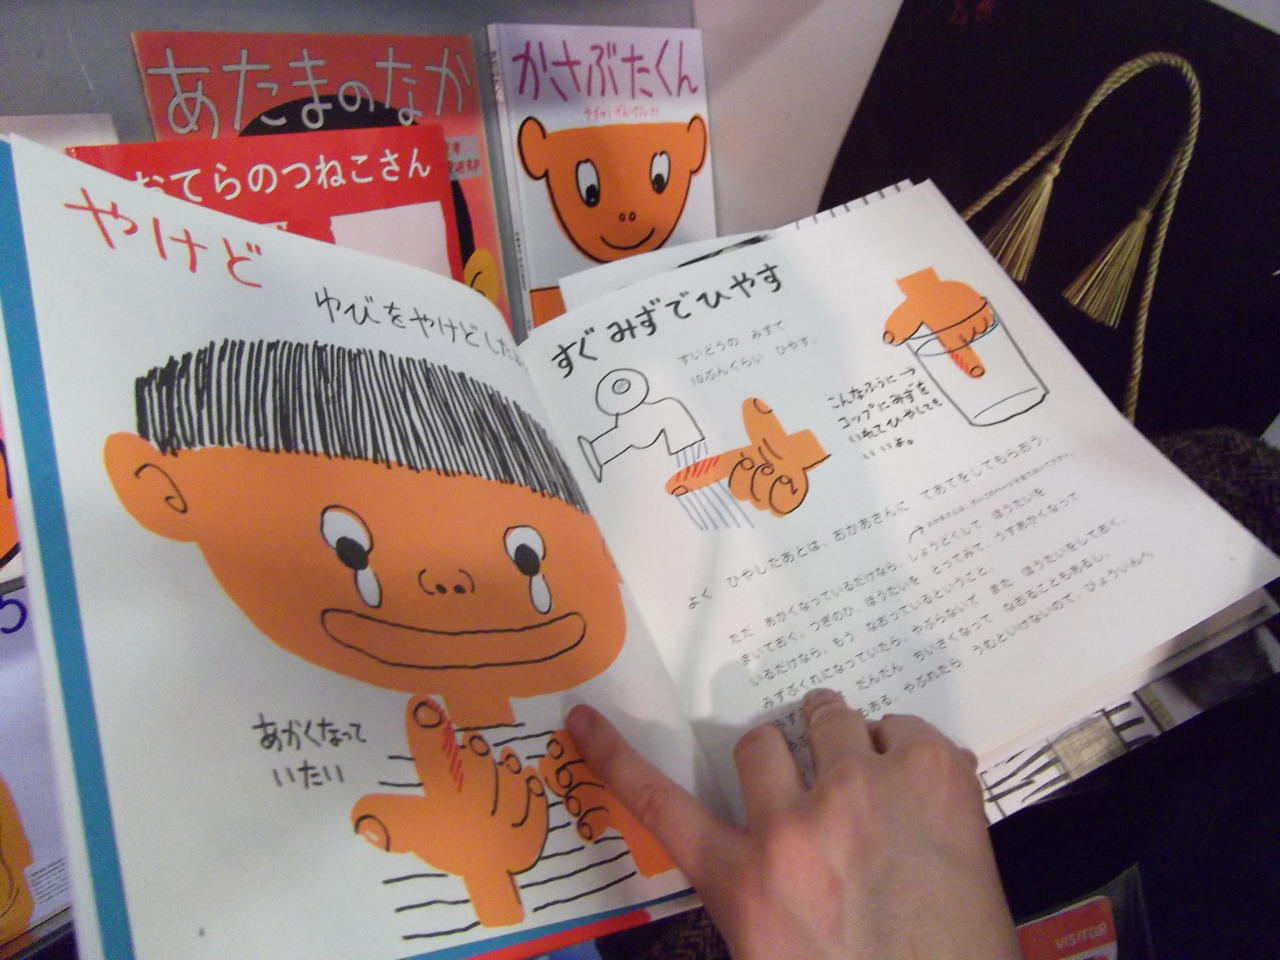 Bologna children's book fair- The korean and Japanese stands were by far some of the most original and inspiring of all the stands at the fair. Such raw and simple design. YUM!